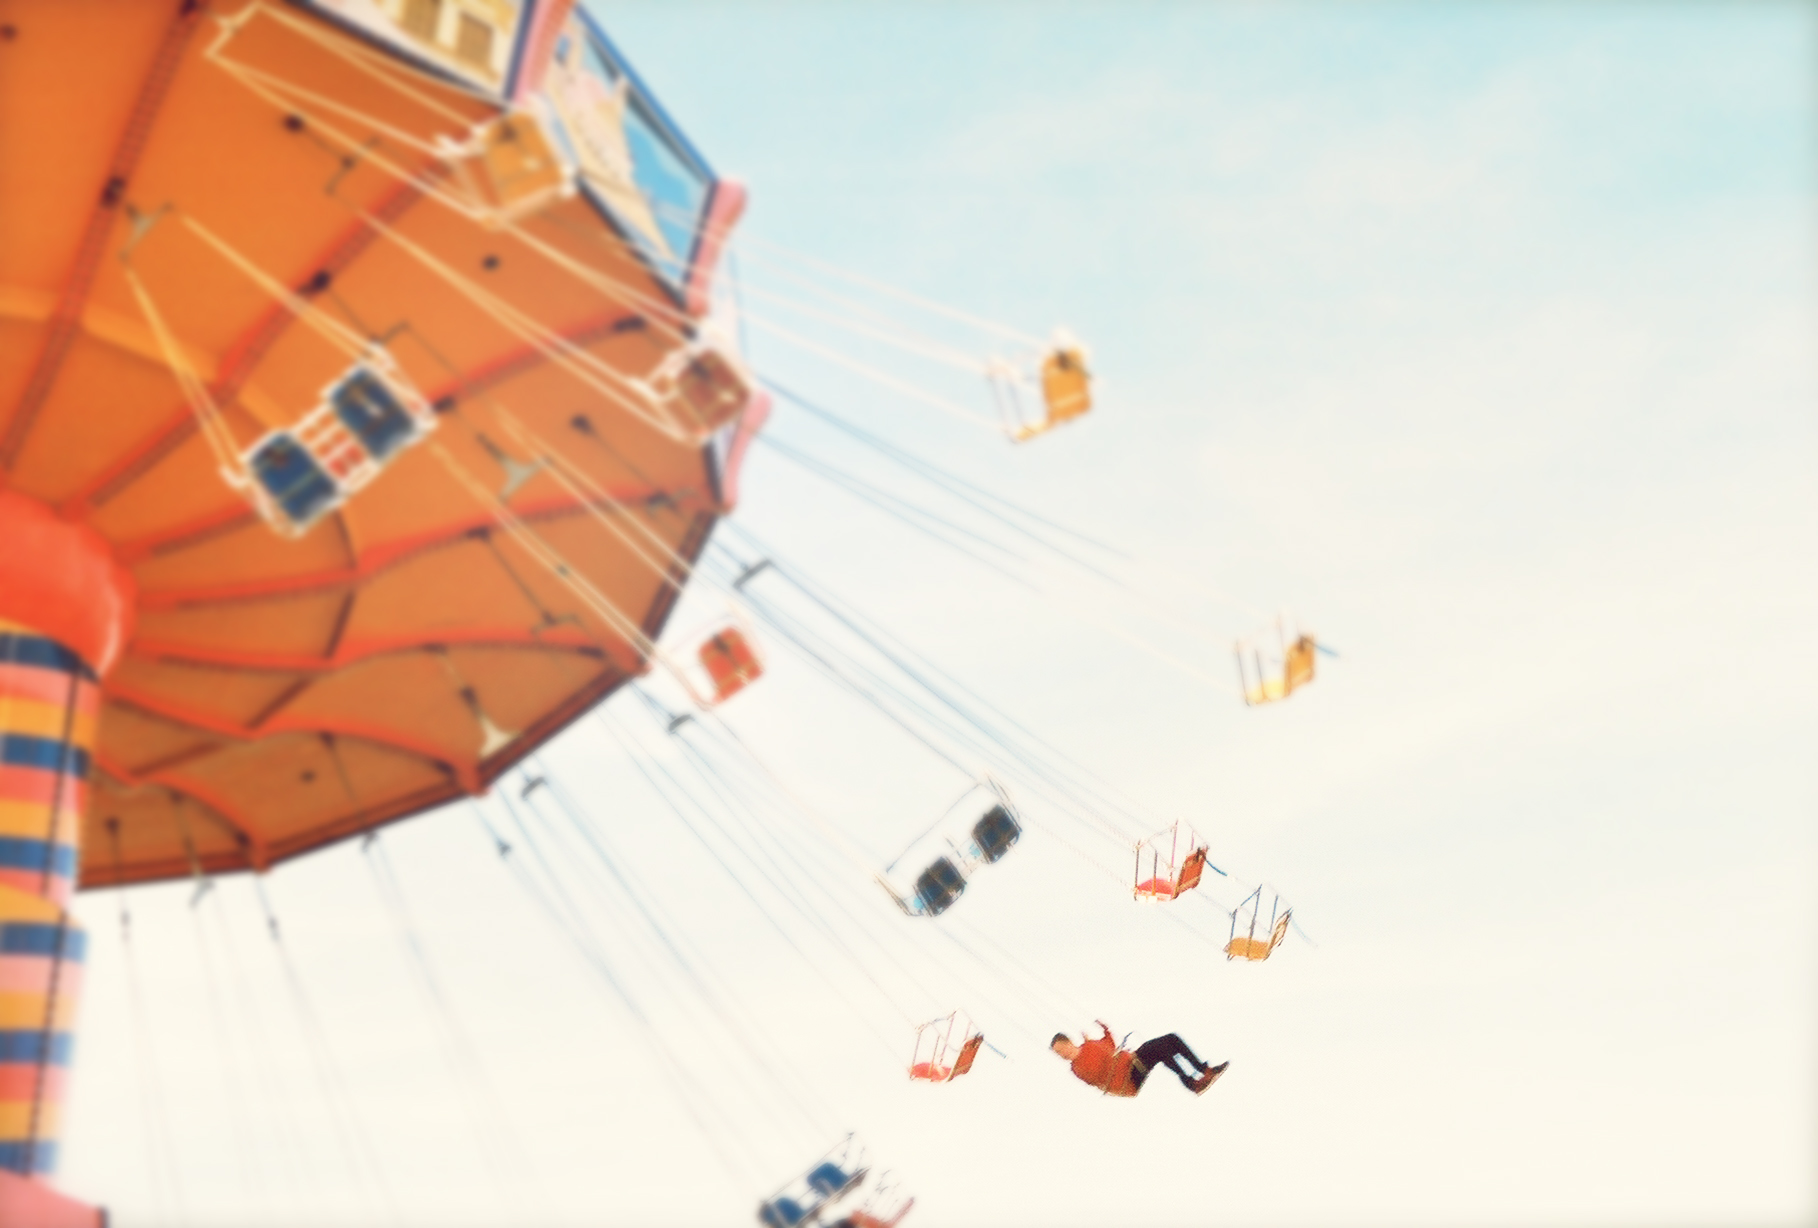 carnival, confetti, merry go round, roller coaster, magic, flying, flying solo, alone, vintage, summer, freedom